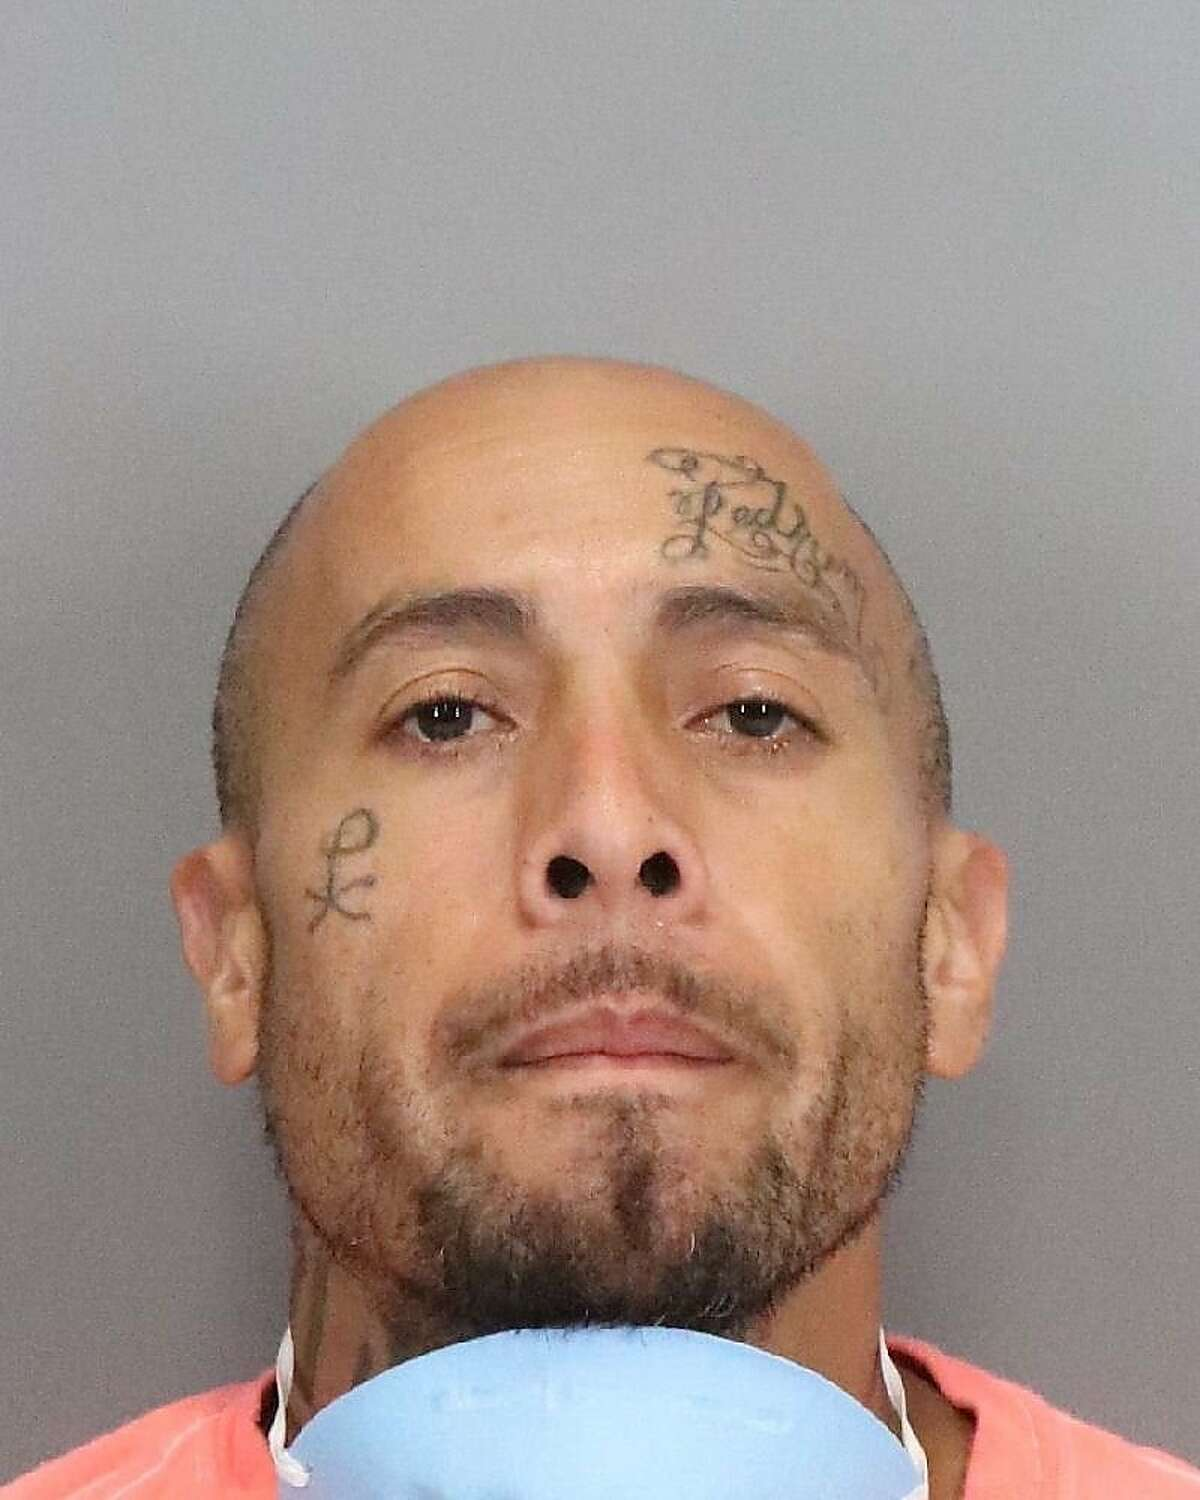 Joseph Castro, 40, allegedly held law enforcement officers at bay for four hours after seizing an officer's gun and shooting in the Santa Clara County Jail parking garage